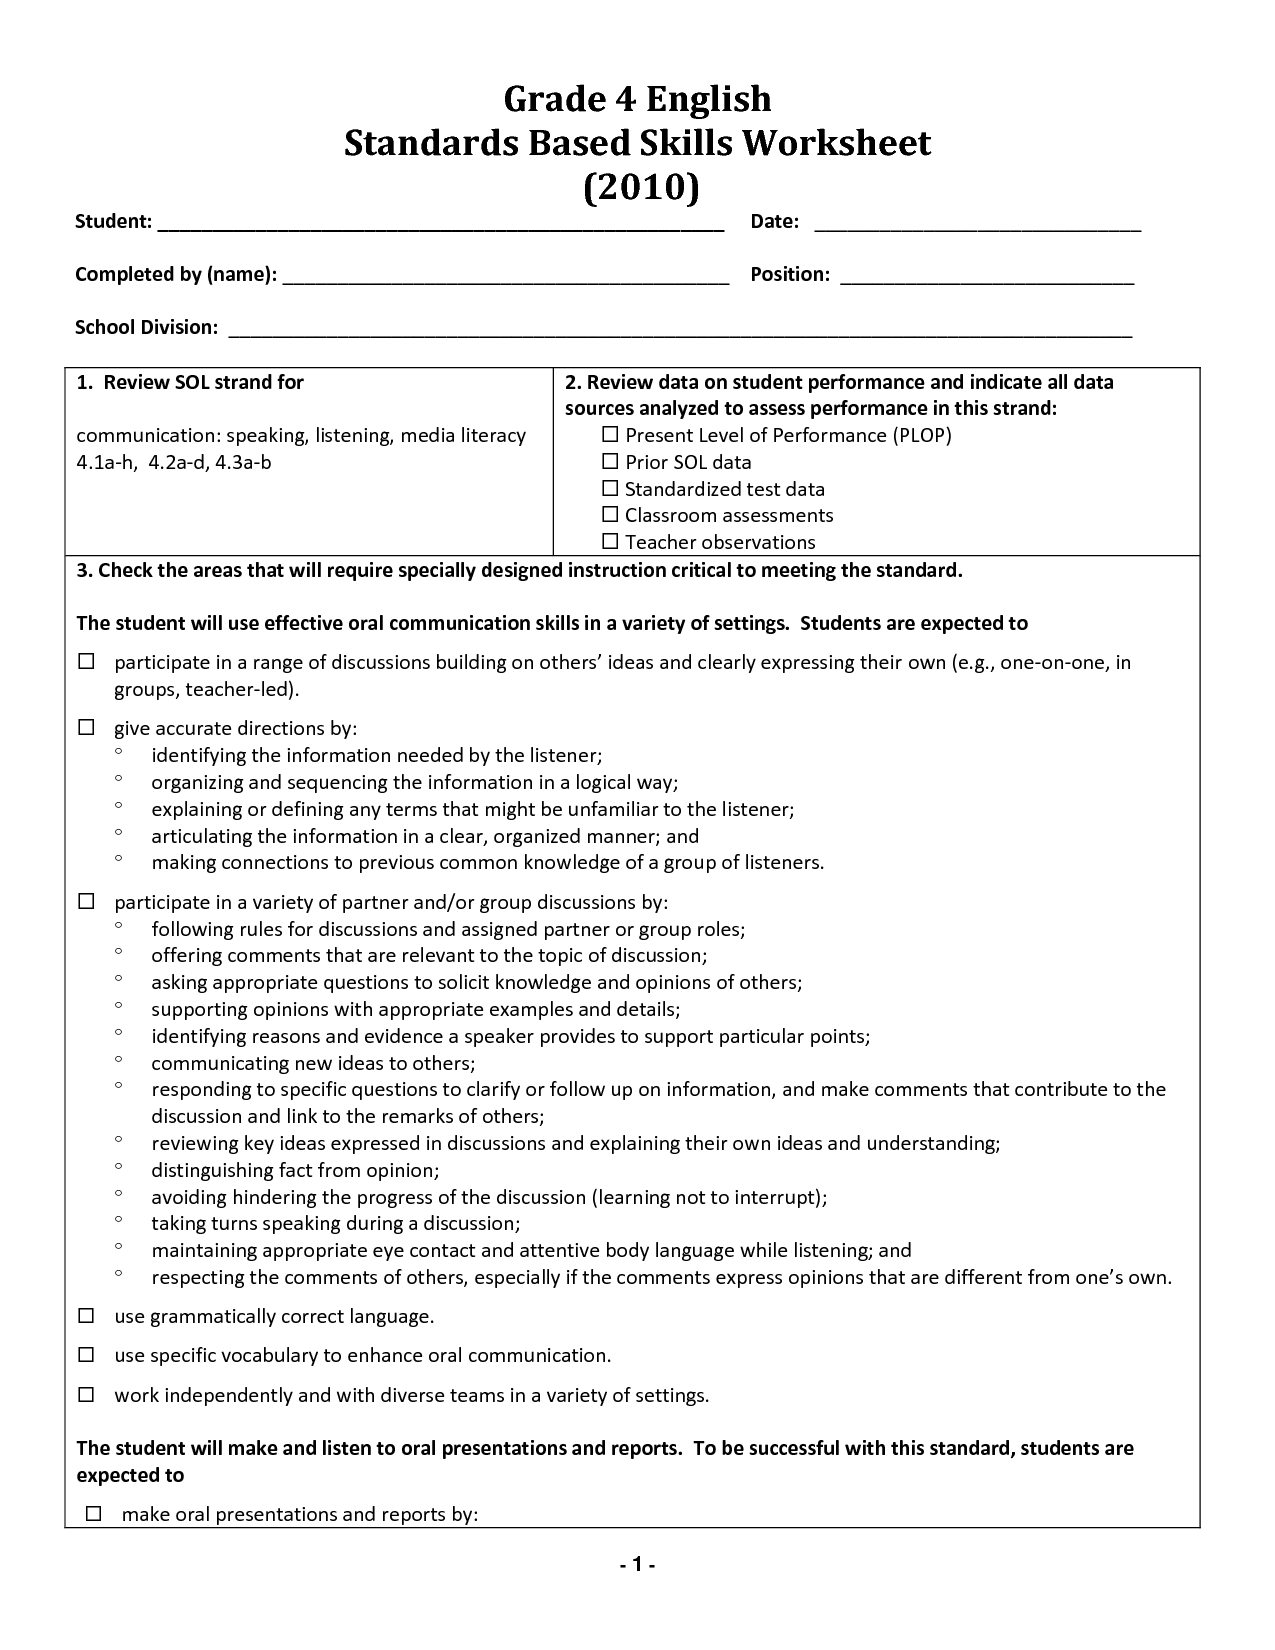 English Grammar Worksheets For Grade 4